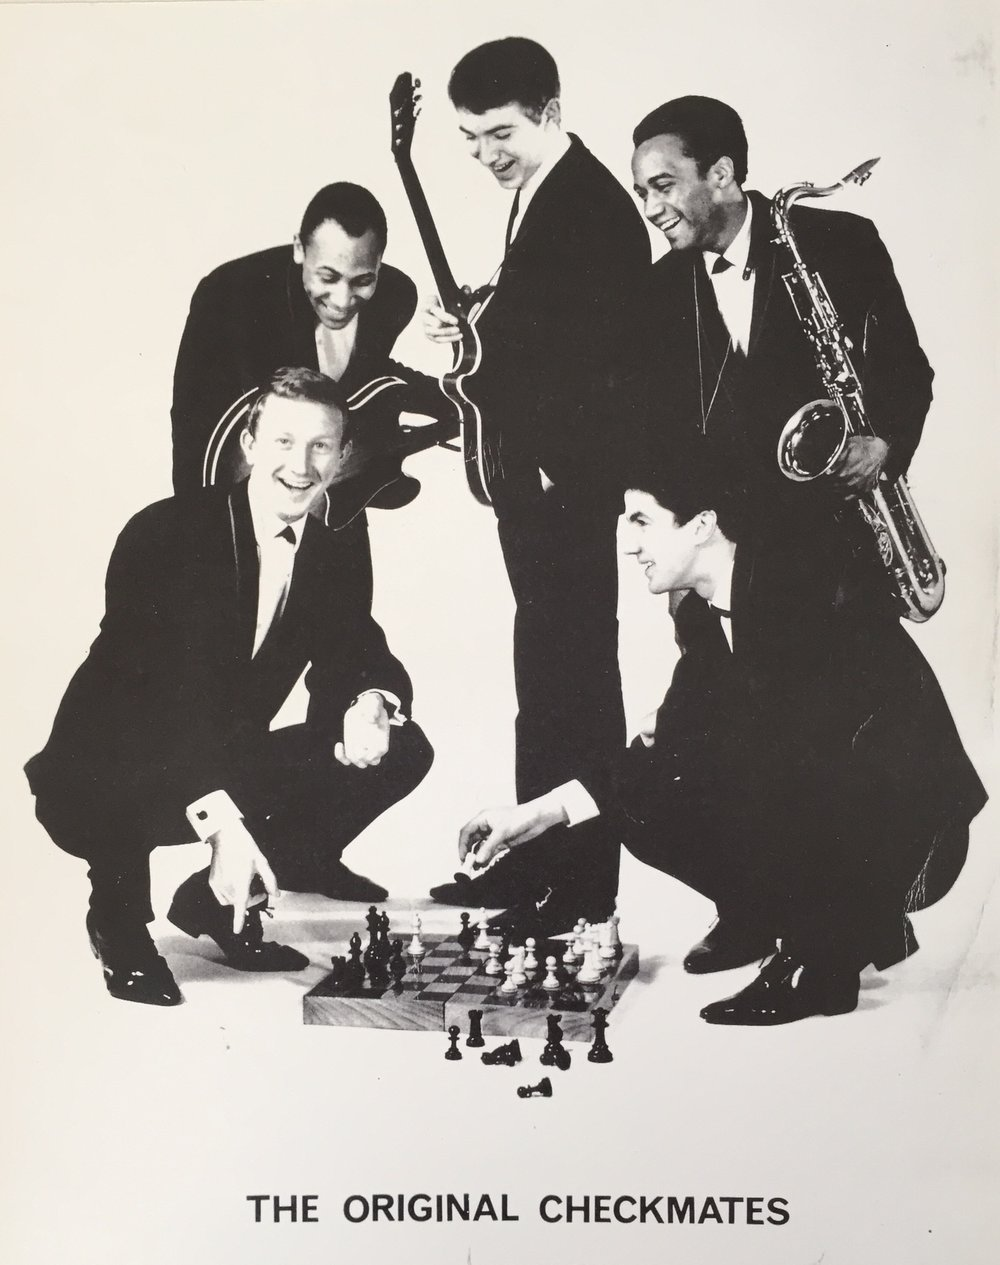 CHECKMATE POSTCARD copy.jpg